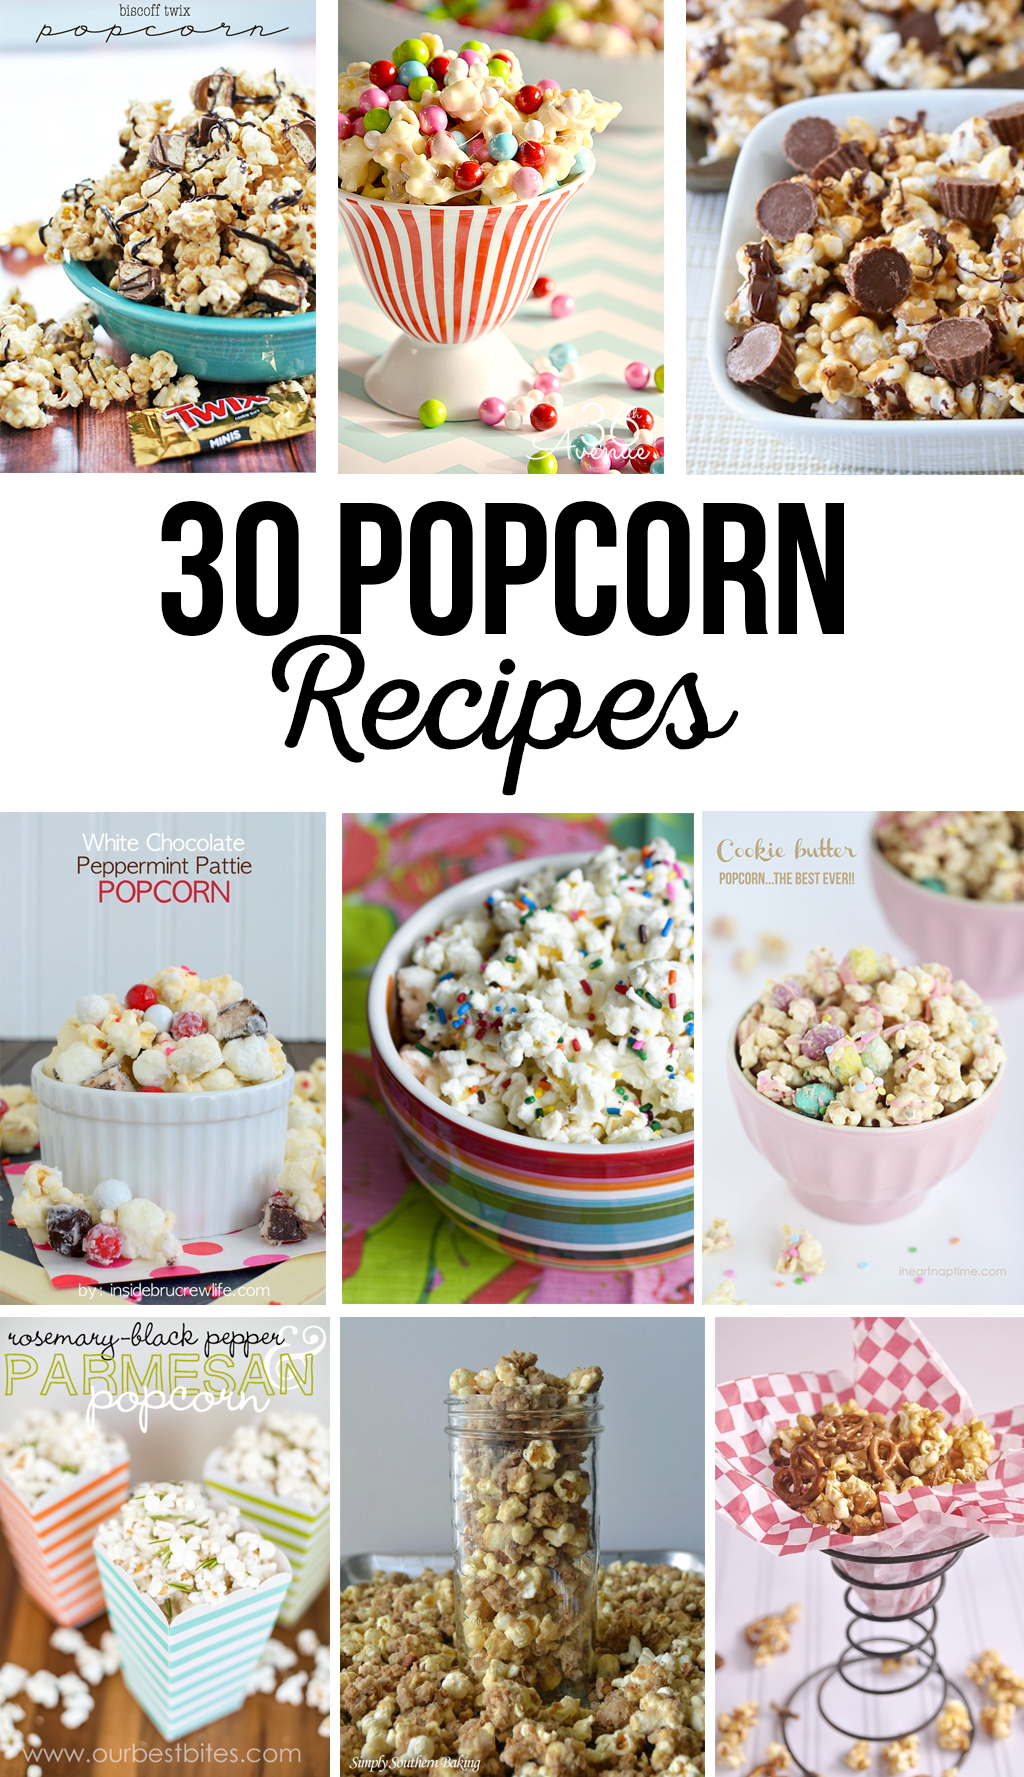 30 Popcorn Recipes